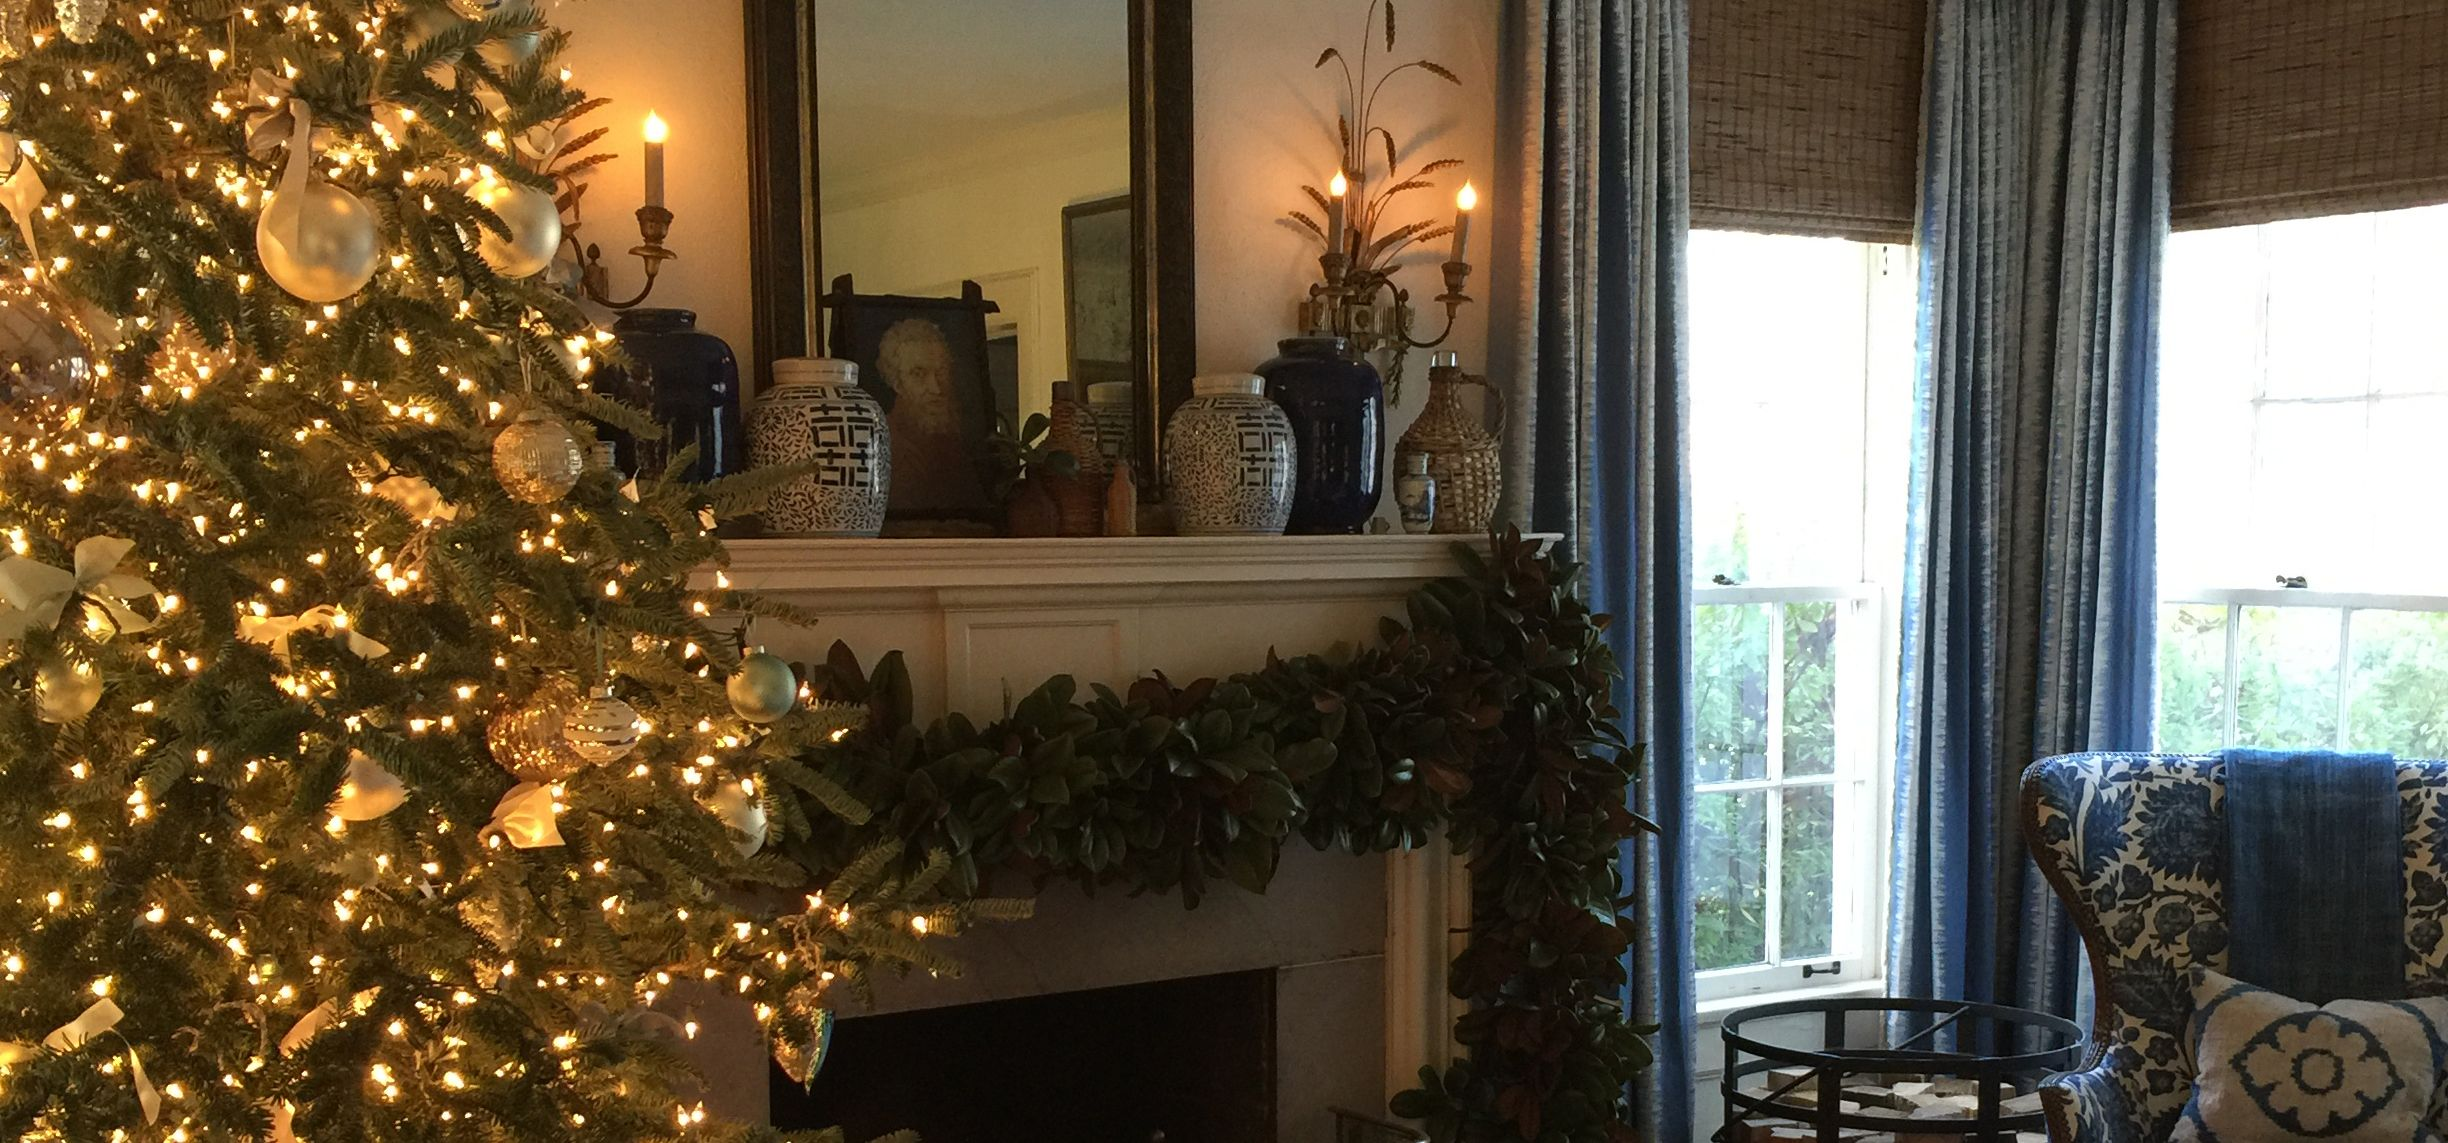 Come on the 71th Holiday House Tour